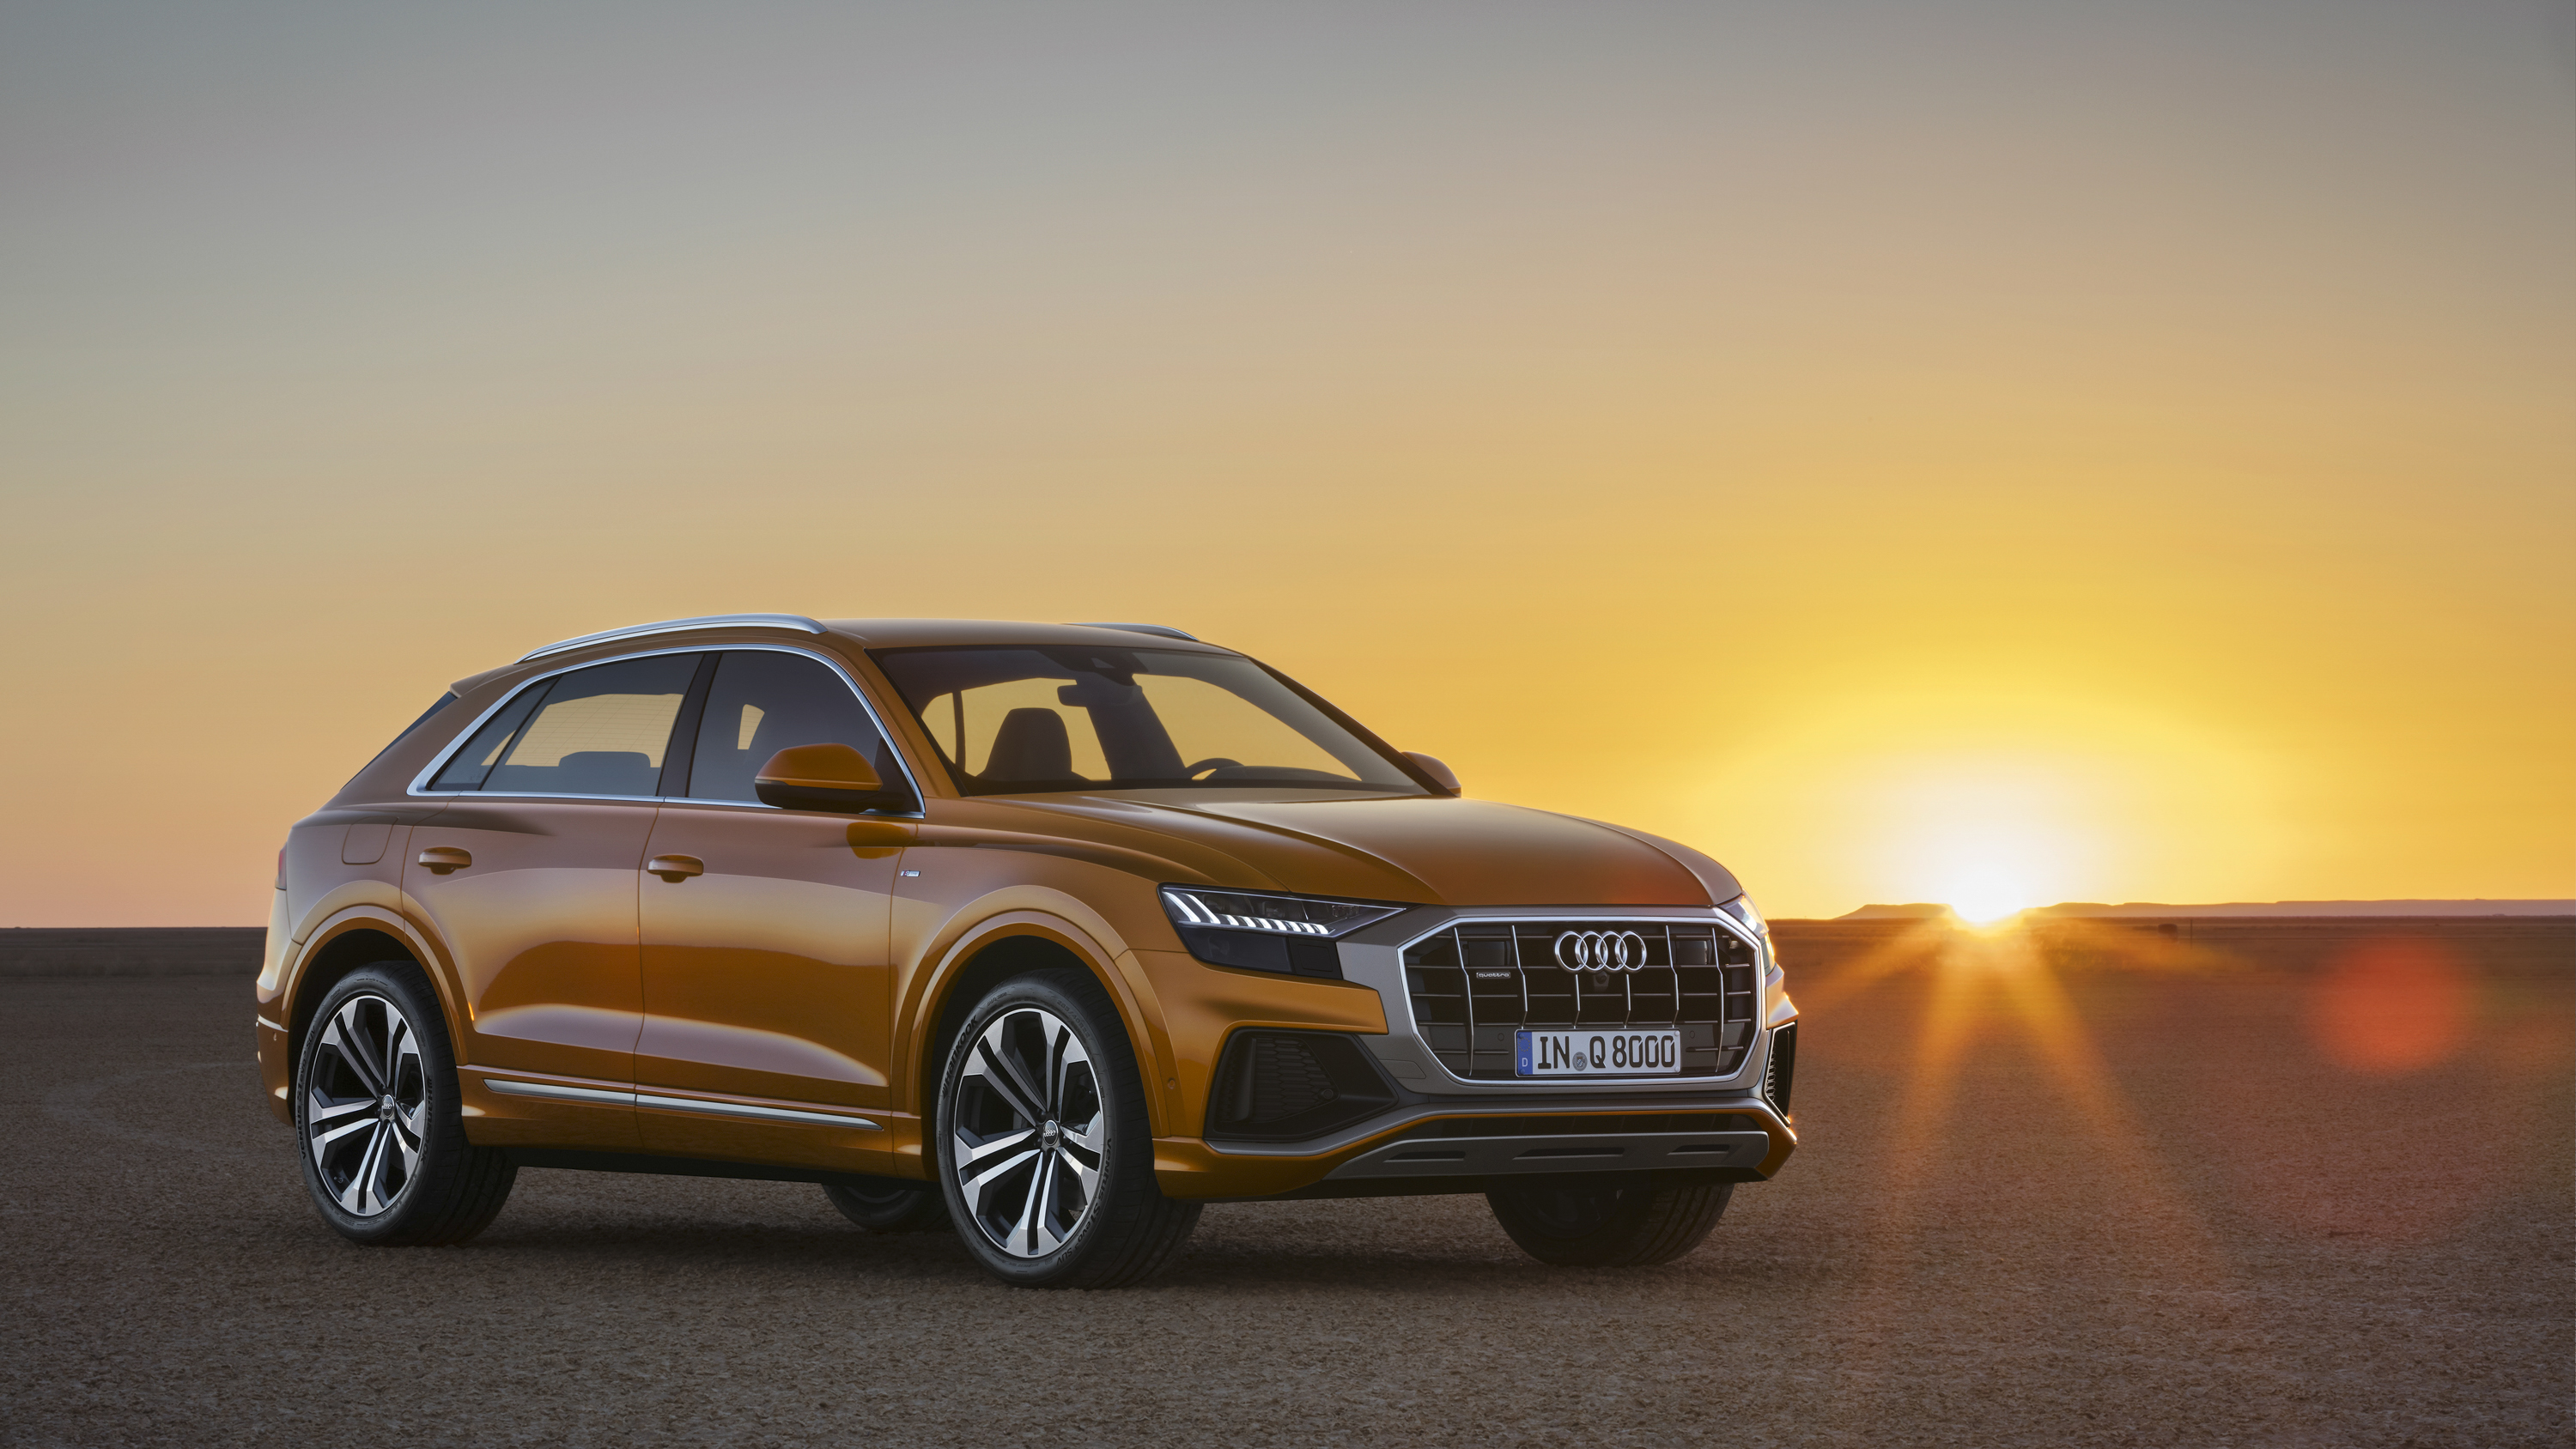 2019 Audi Q8 Top Speed